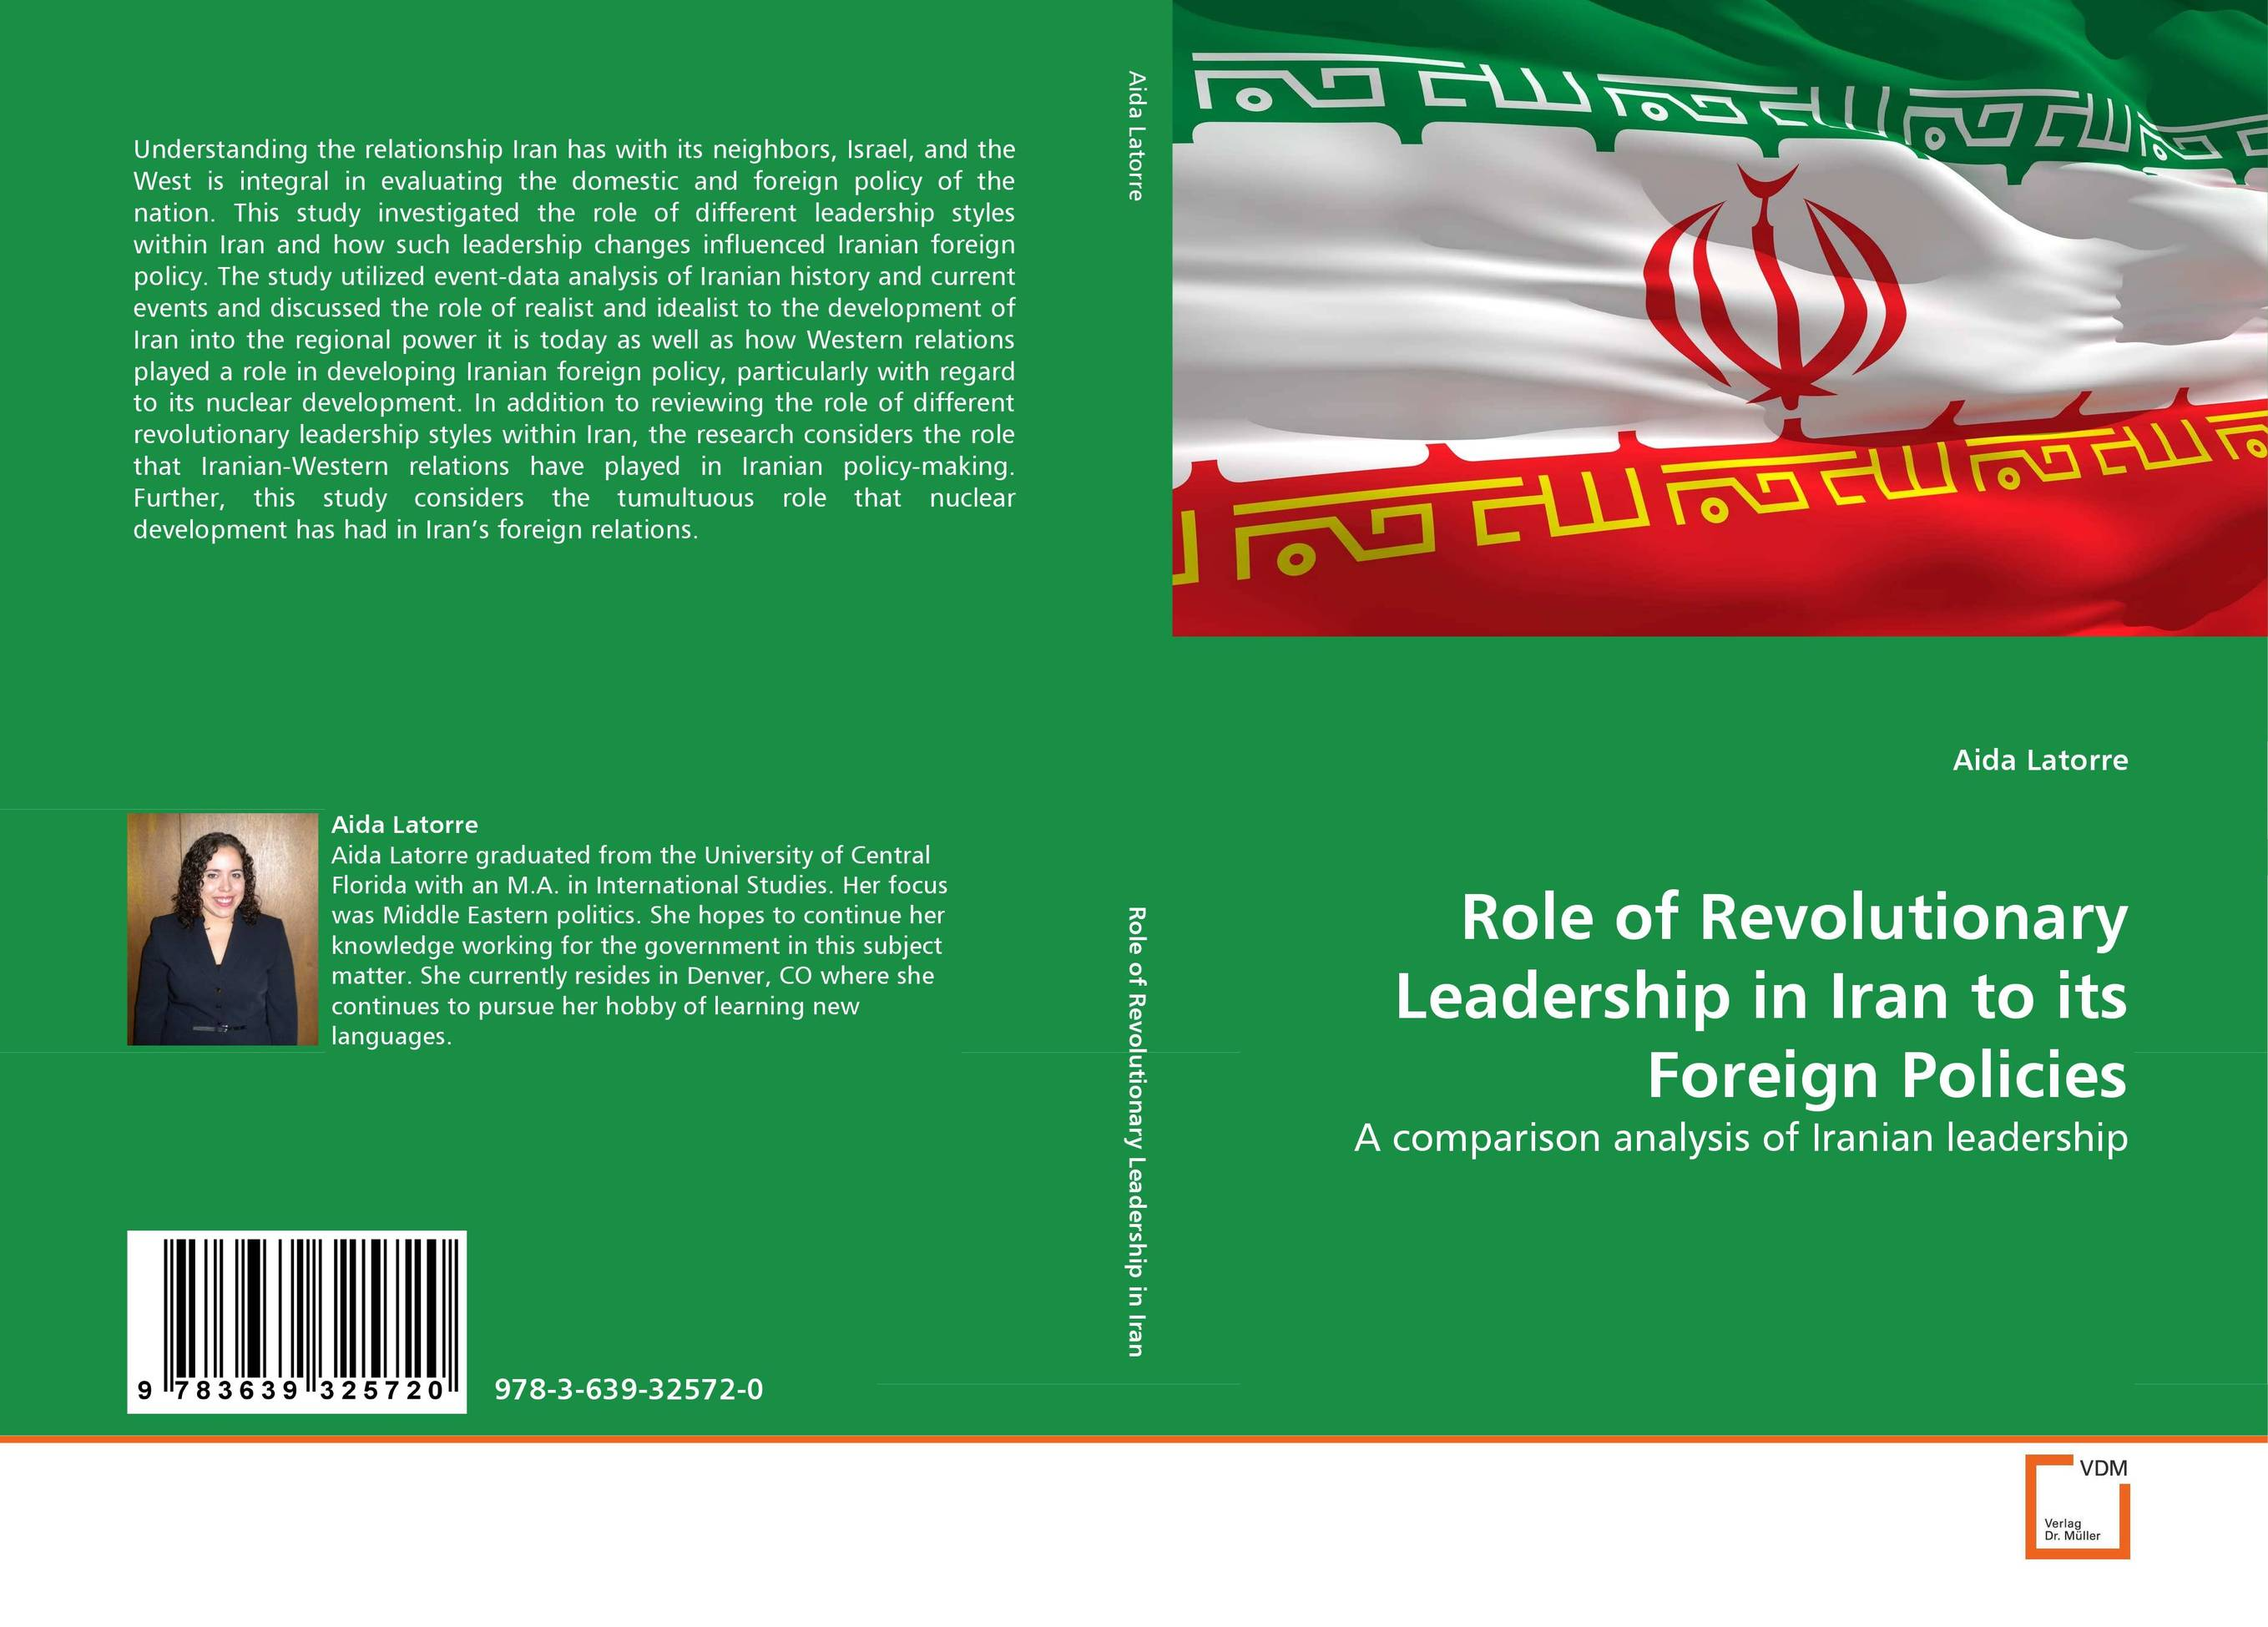 Role of Revolutionary Leadership in Iran to its Foreign Policies bahram navazeni iran and the eagles